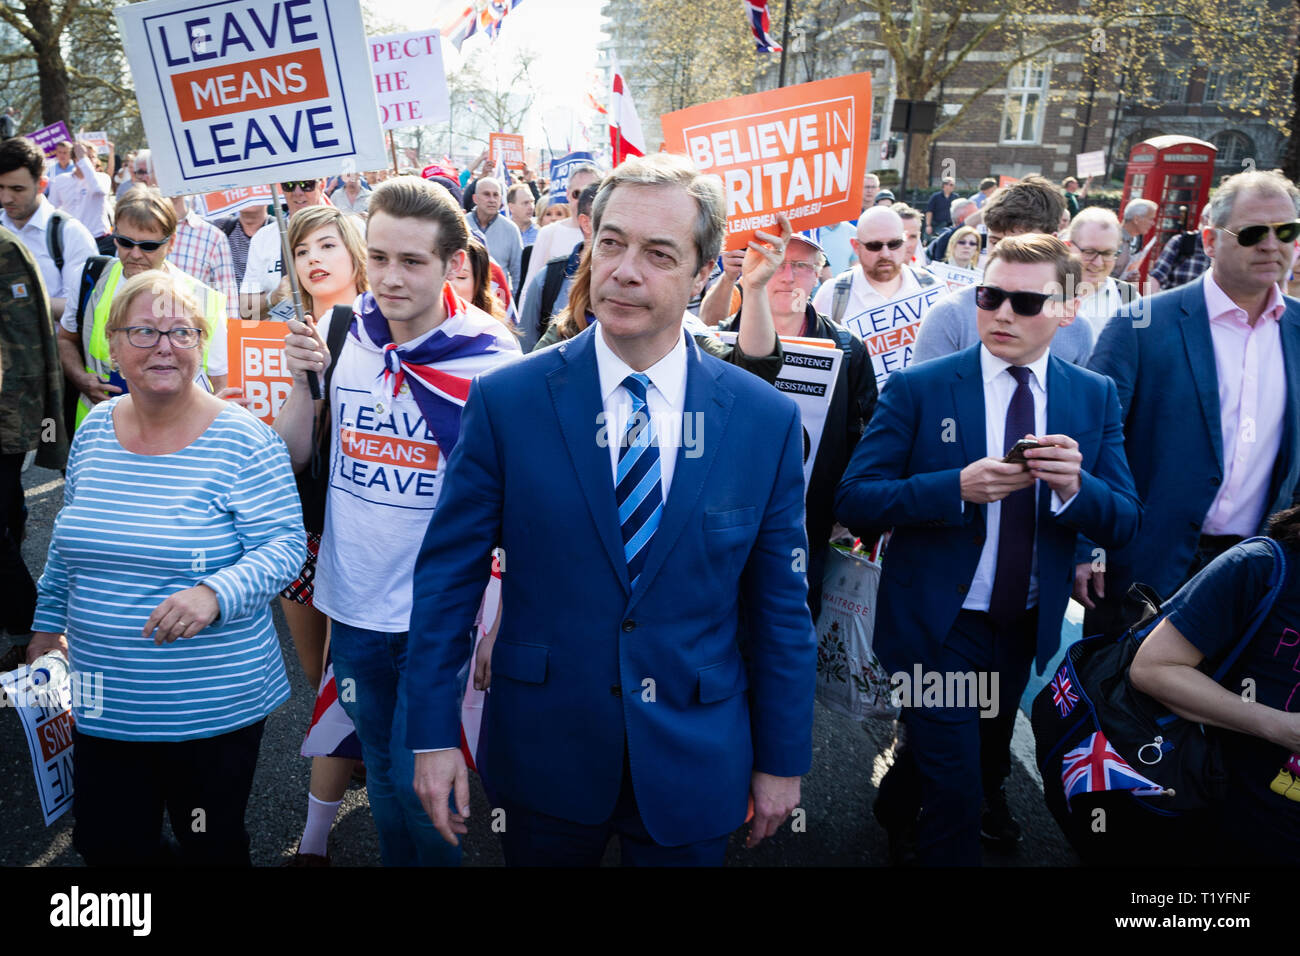 London, UK. 29th March 2019. Thousands of demonstrators gather at Parliament Square after a two-week march from Sunderland Andy Barton/Alamy Live News Stock Photo